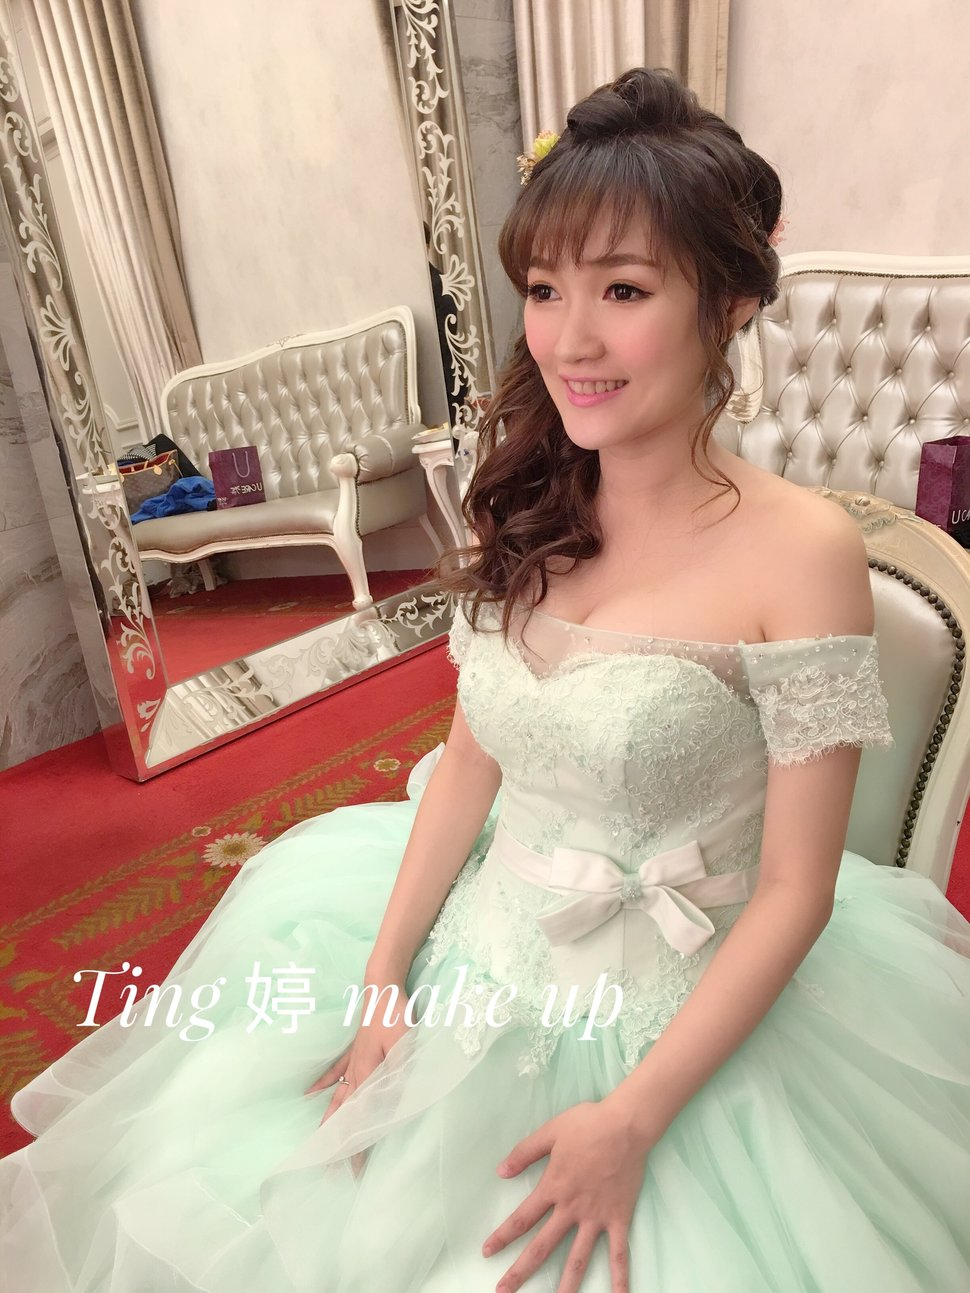 image - Ting婷 make up studio - 結婚吧